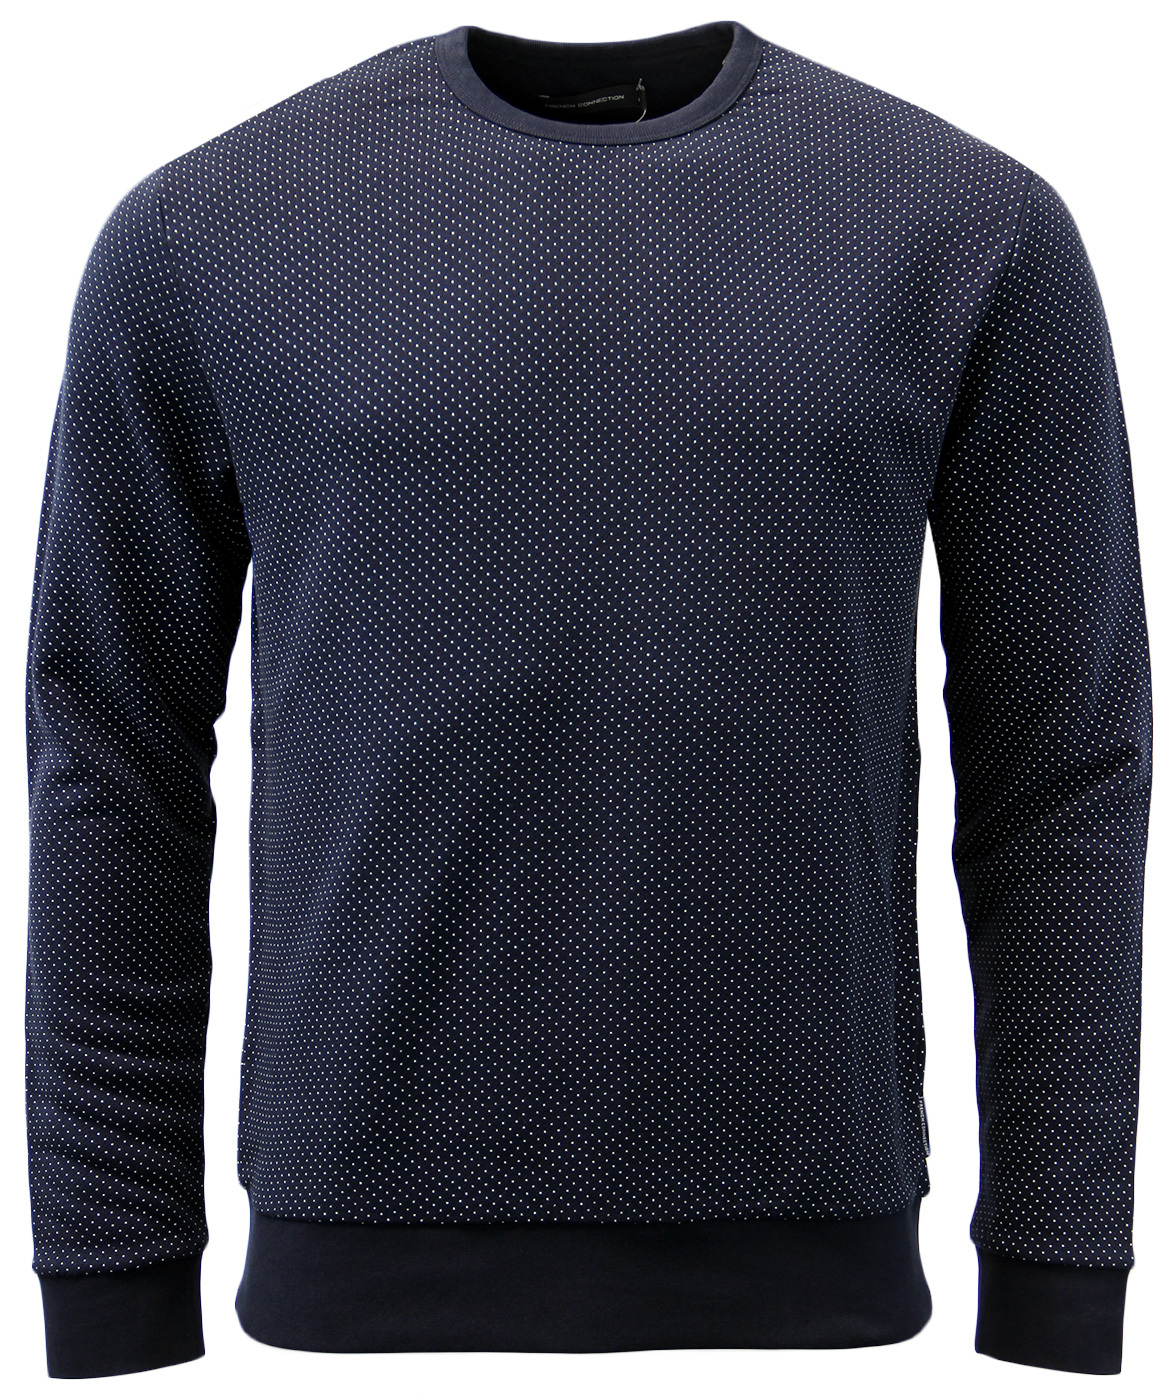 FRENCH CONNECTION Retro Mod 60s Micro Dot Jumper